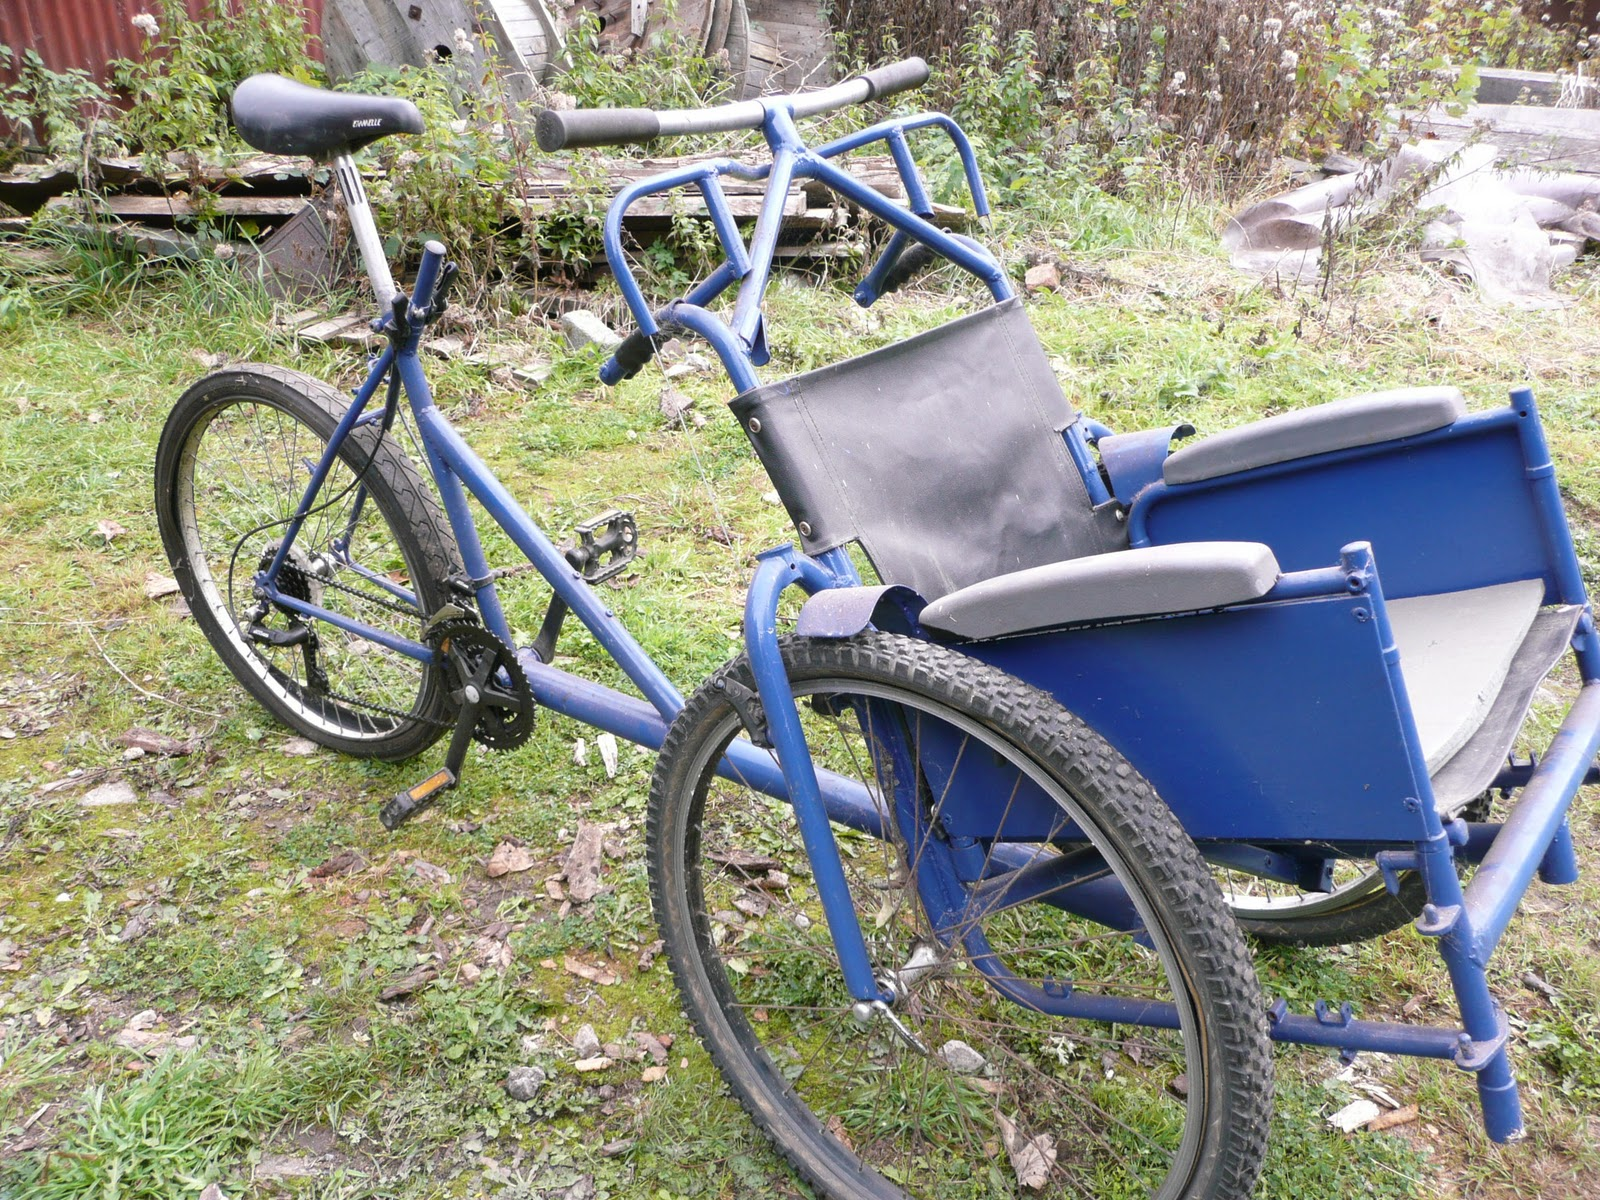 The Bike Chair Cheap Sashes Spindles And Sprockets Wheelchair For Community Use